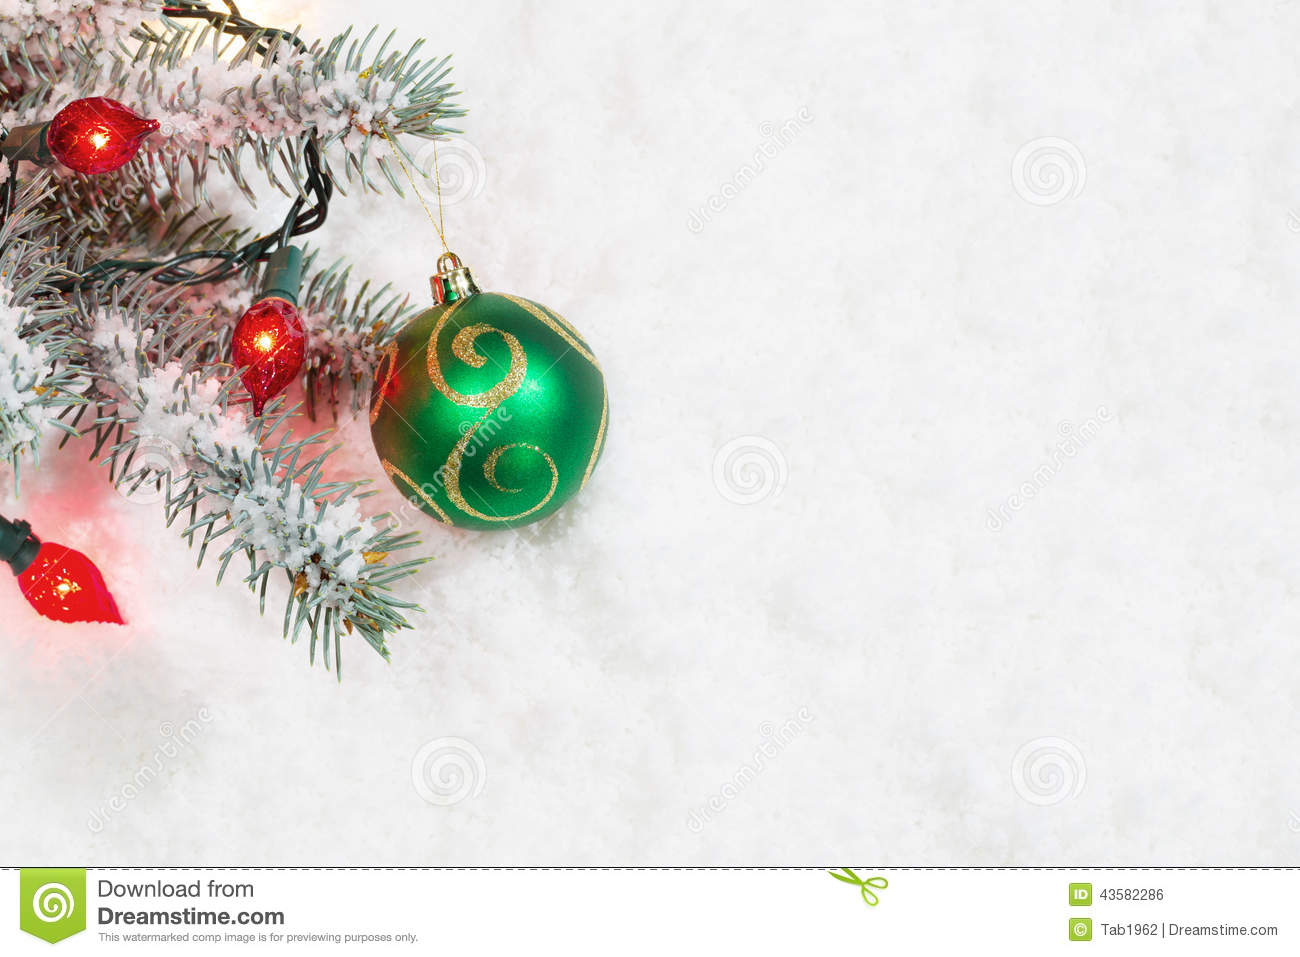 Christmas ornament with lights hanging from tree branch